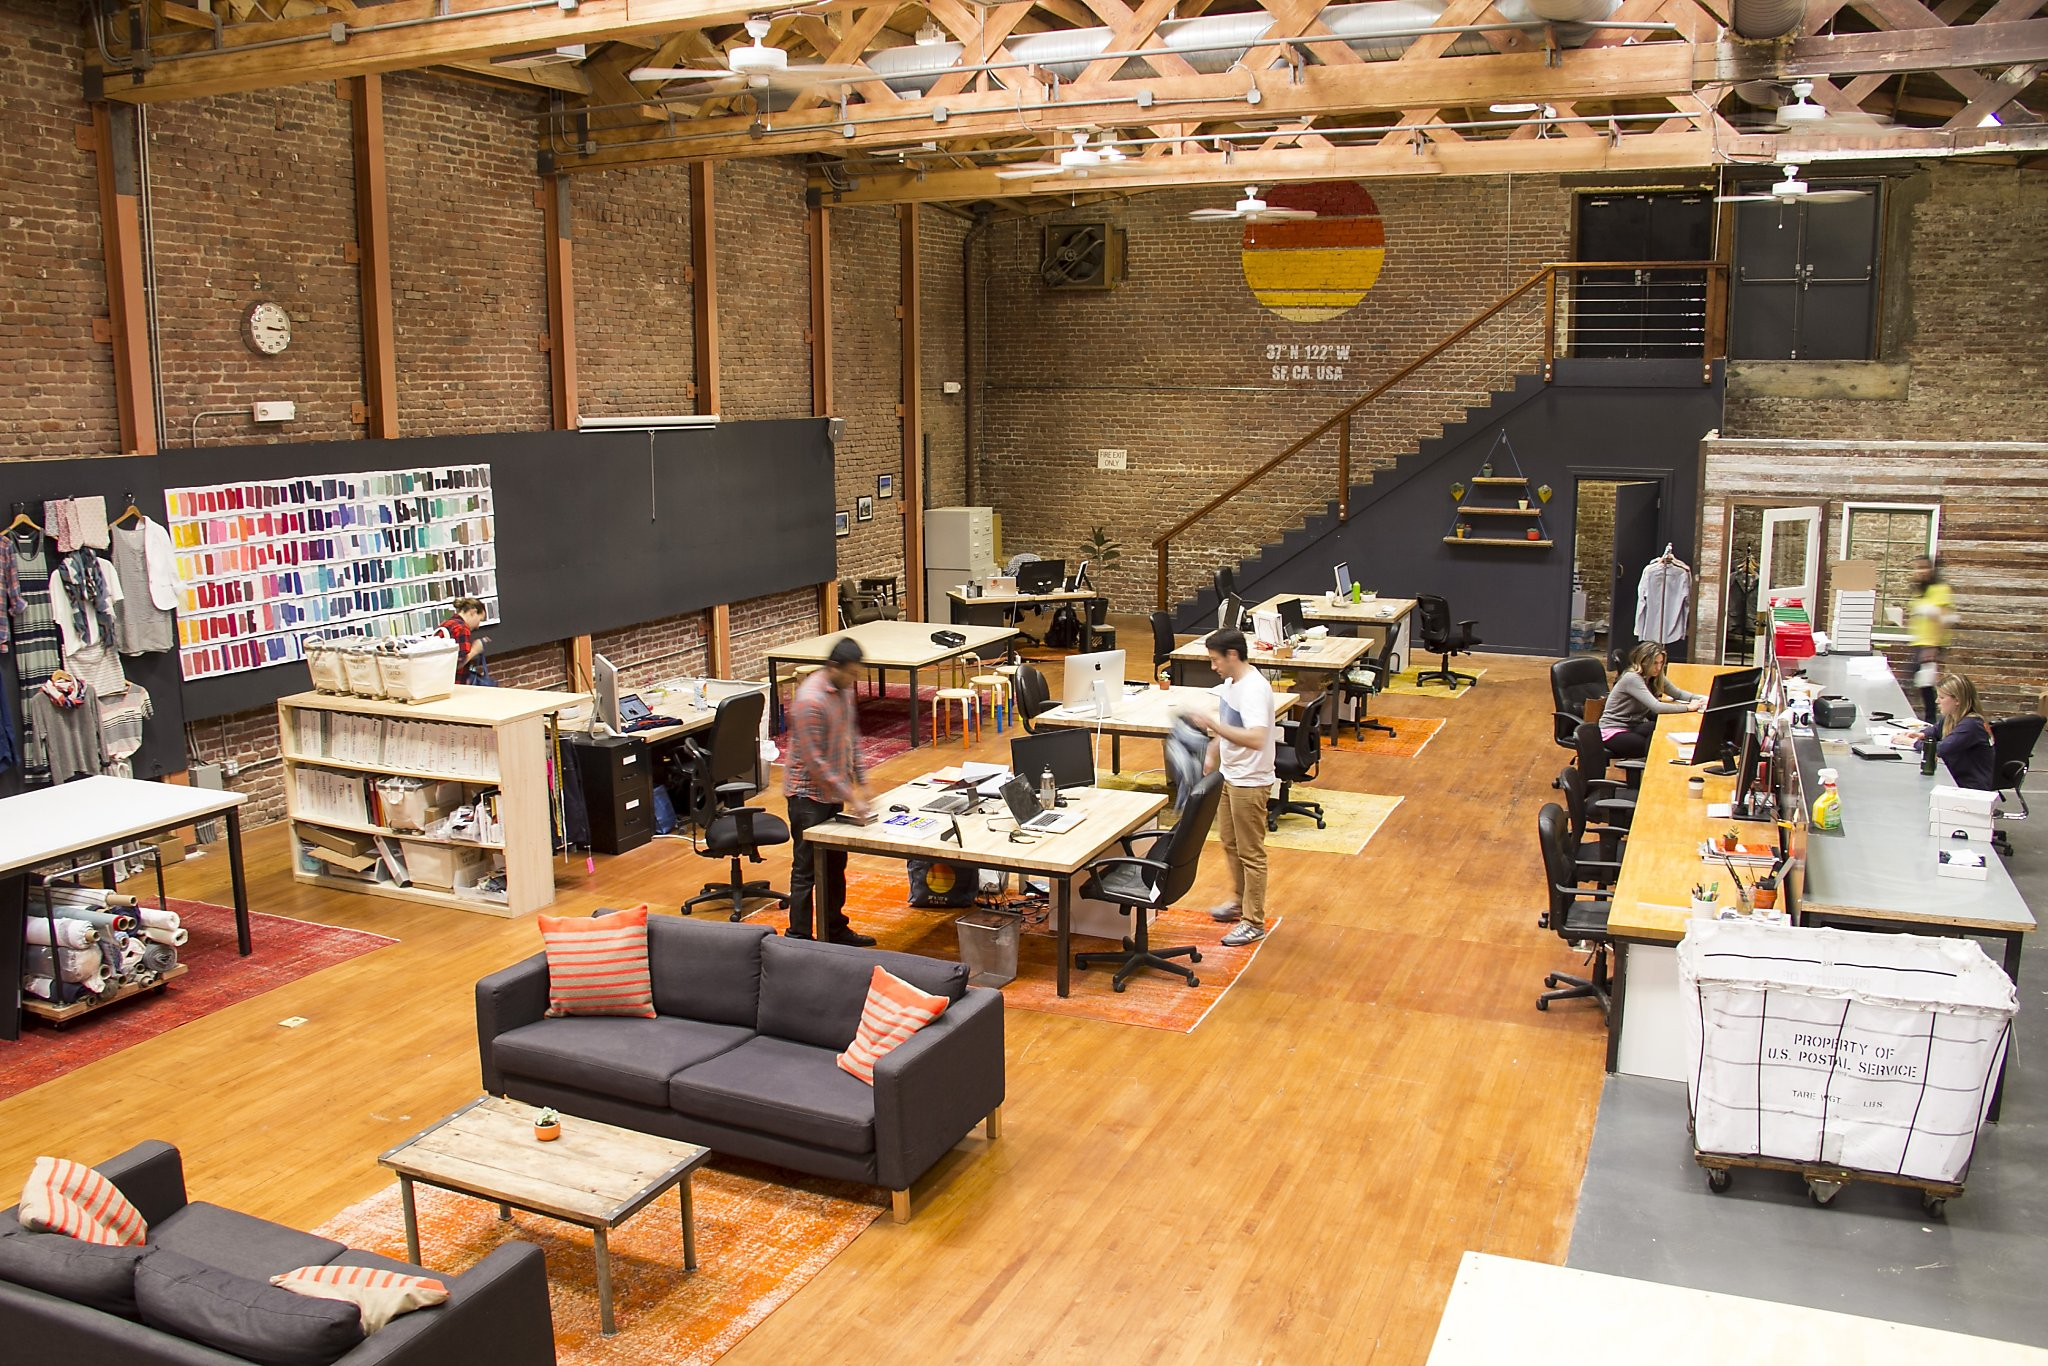 S F 39 S Studio Workshops Where Makers Get Down To Business